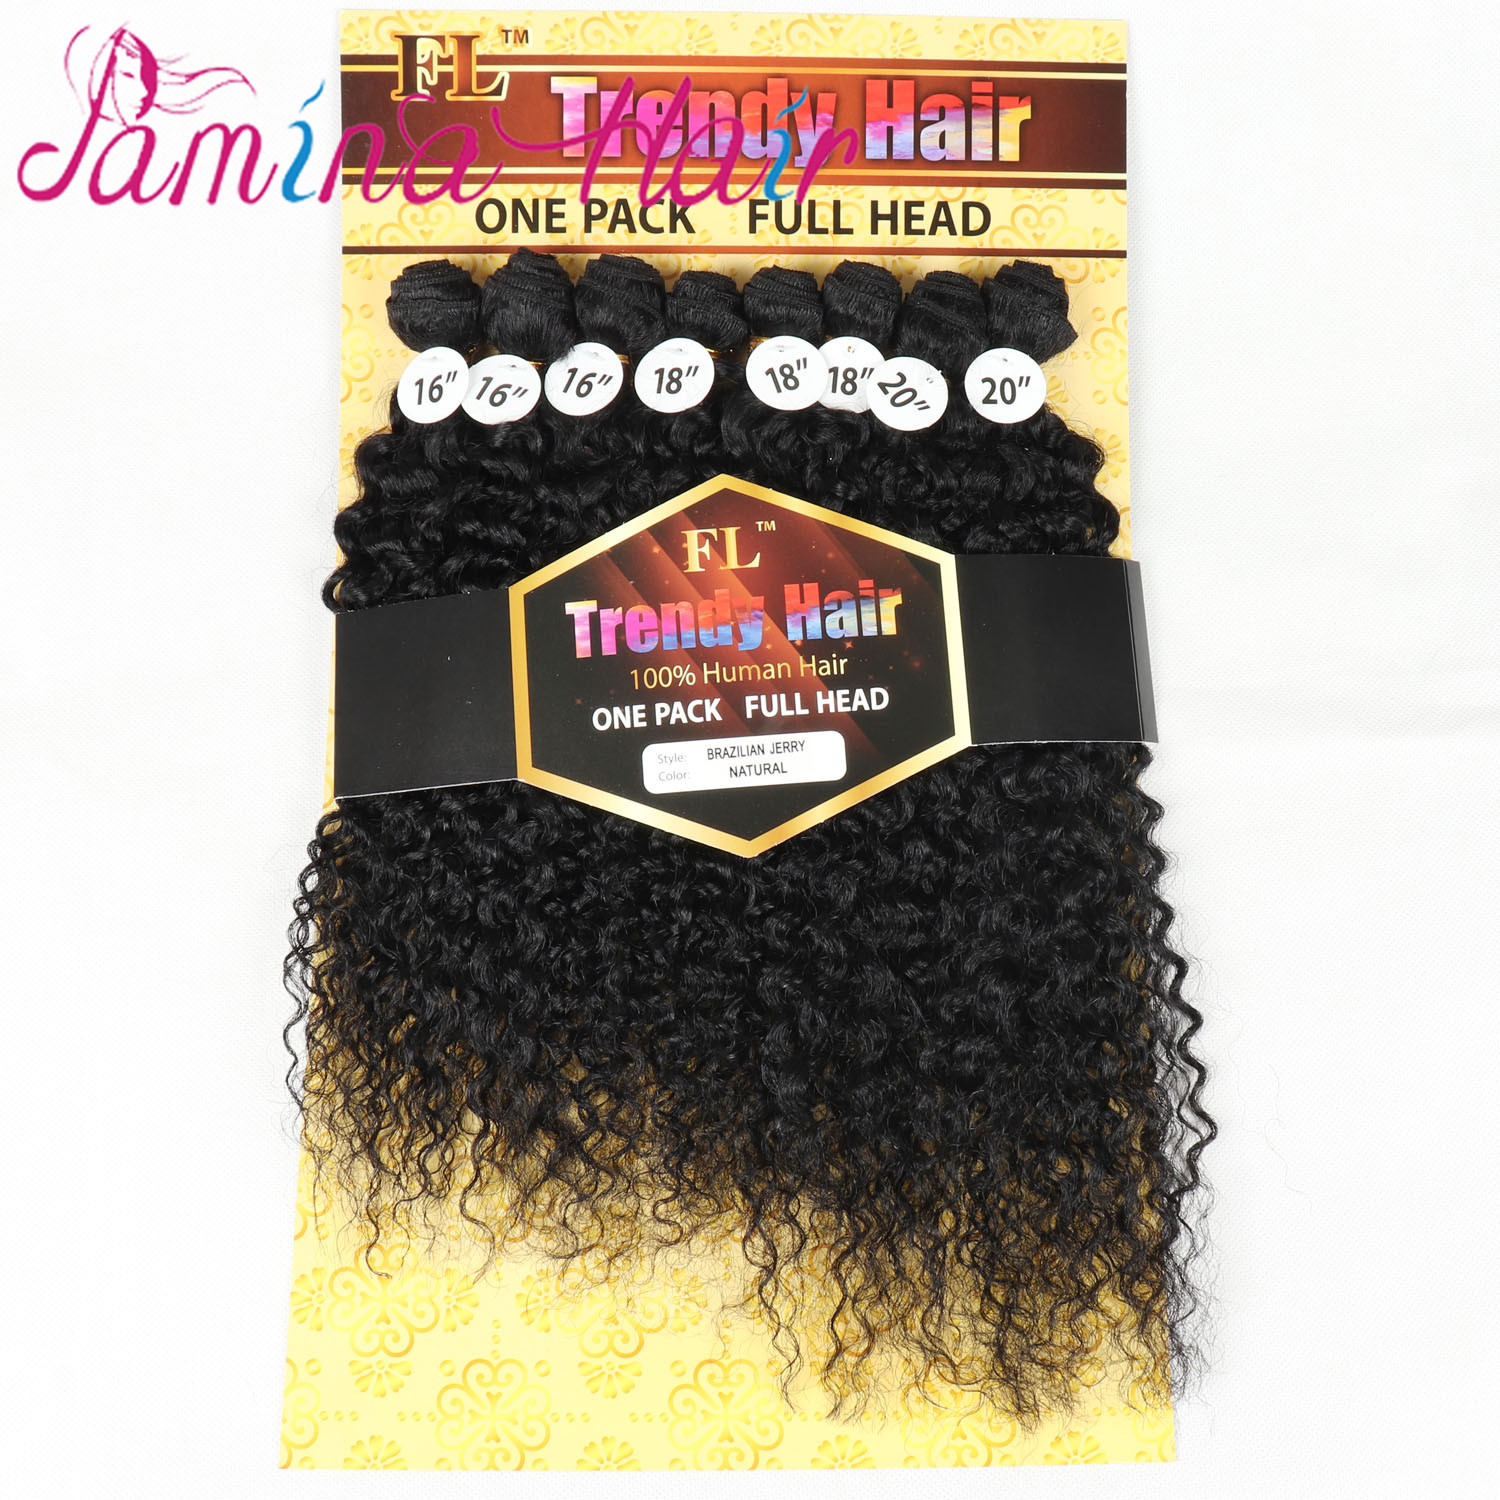 Wholesale One Package For One Head <strong>Virgin</strong> <strong>Brazilian</strong> Jerry Curly Human <strong>Hair</strong> <strong>Bundles</strong> Weave Extensions 16&quot; 18&quot; 20&quot;